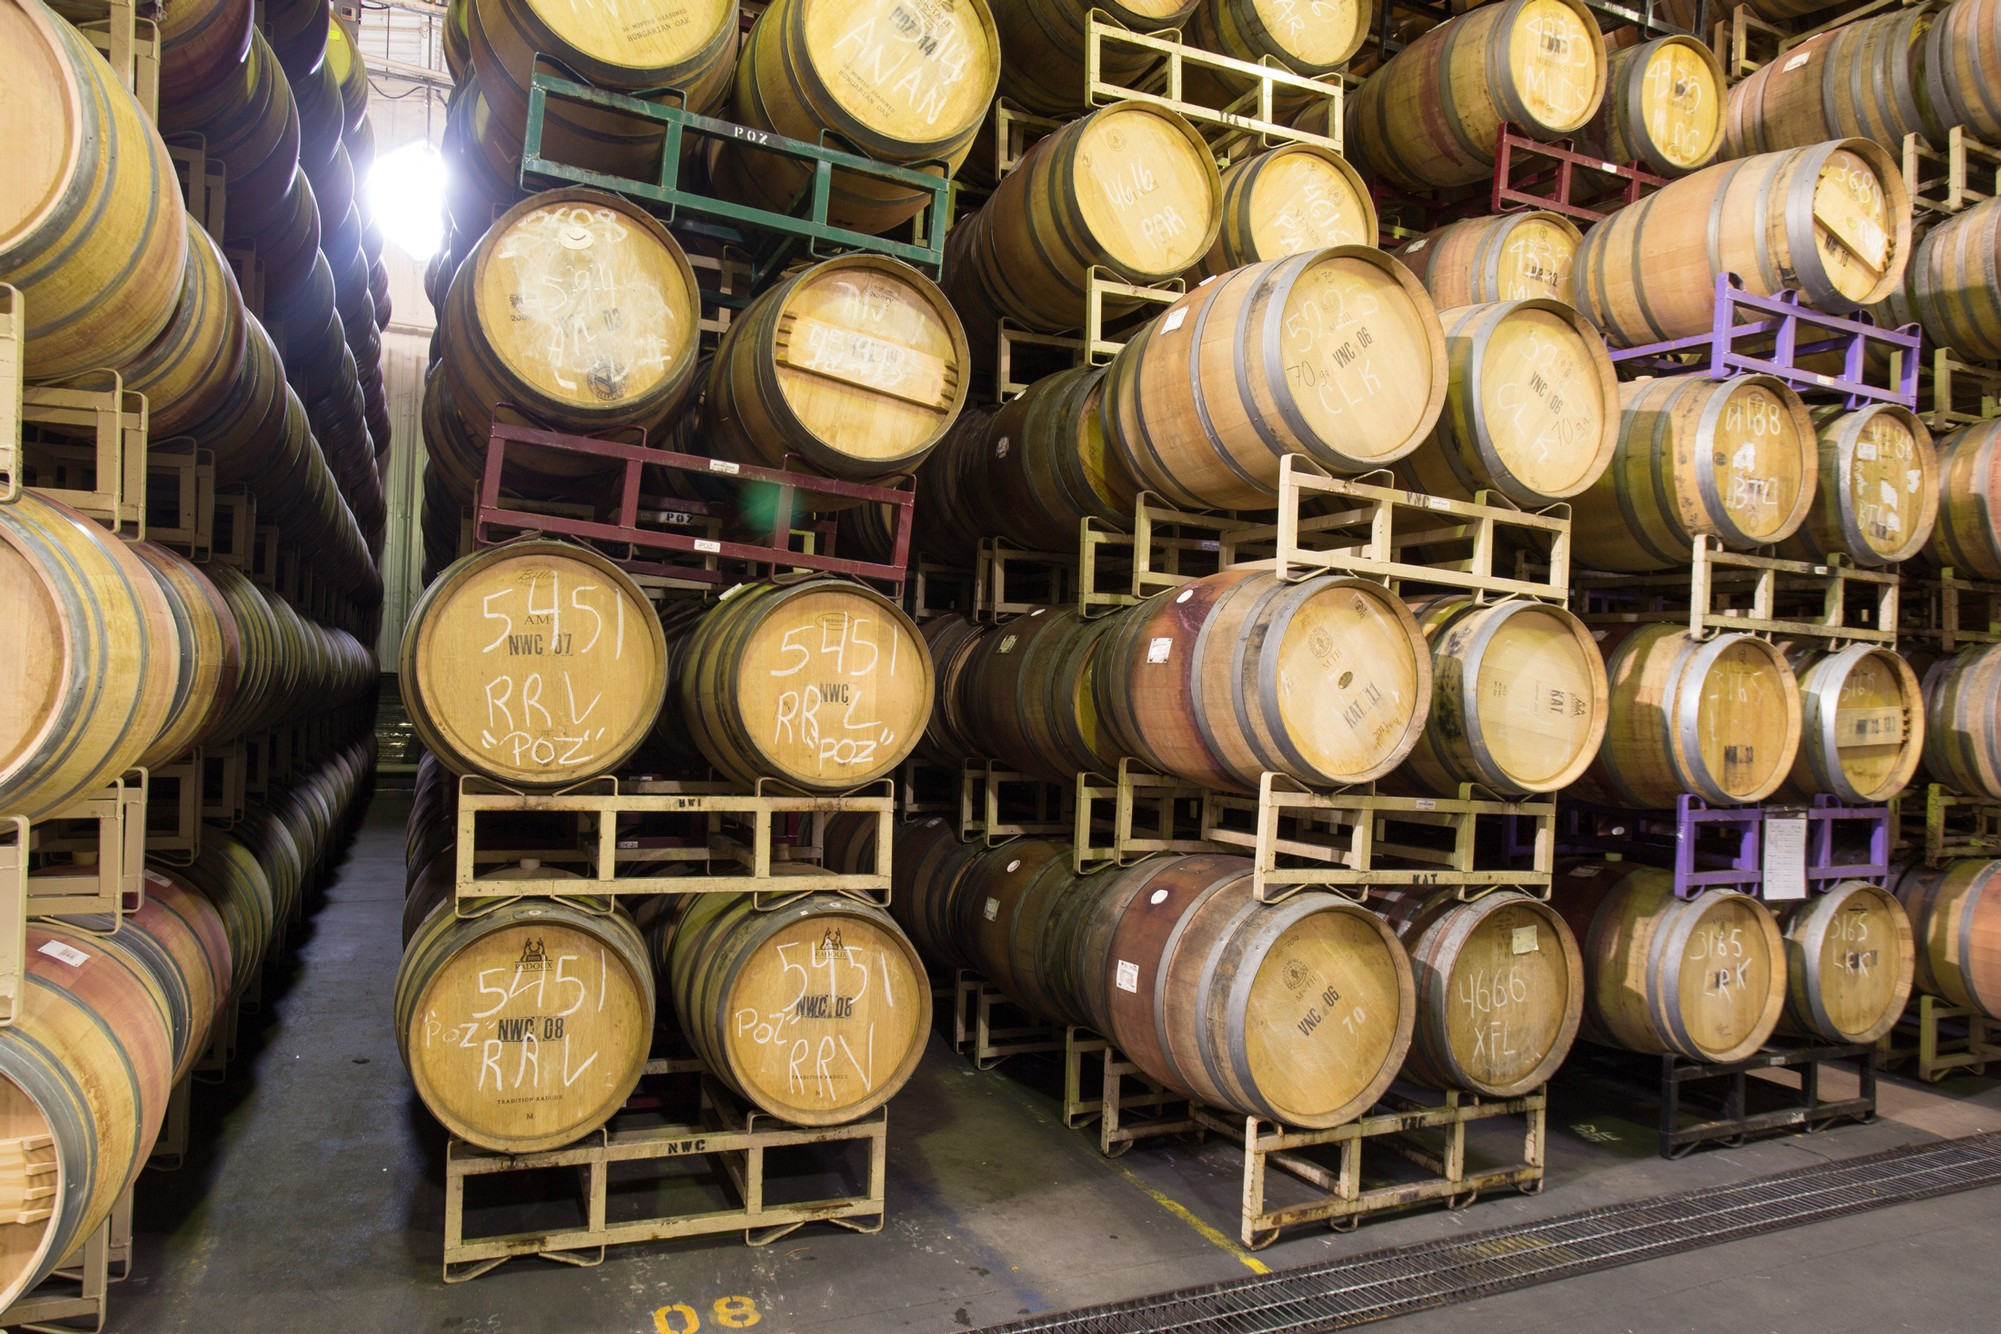 Stacks of wine barrels